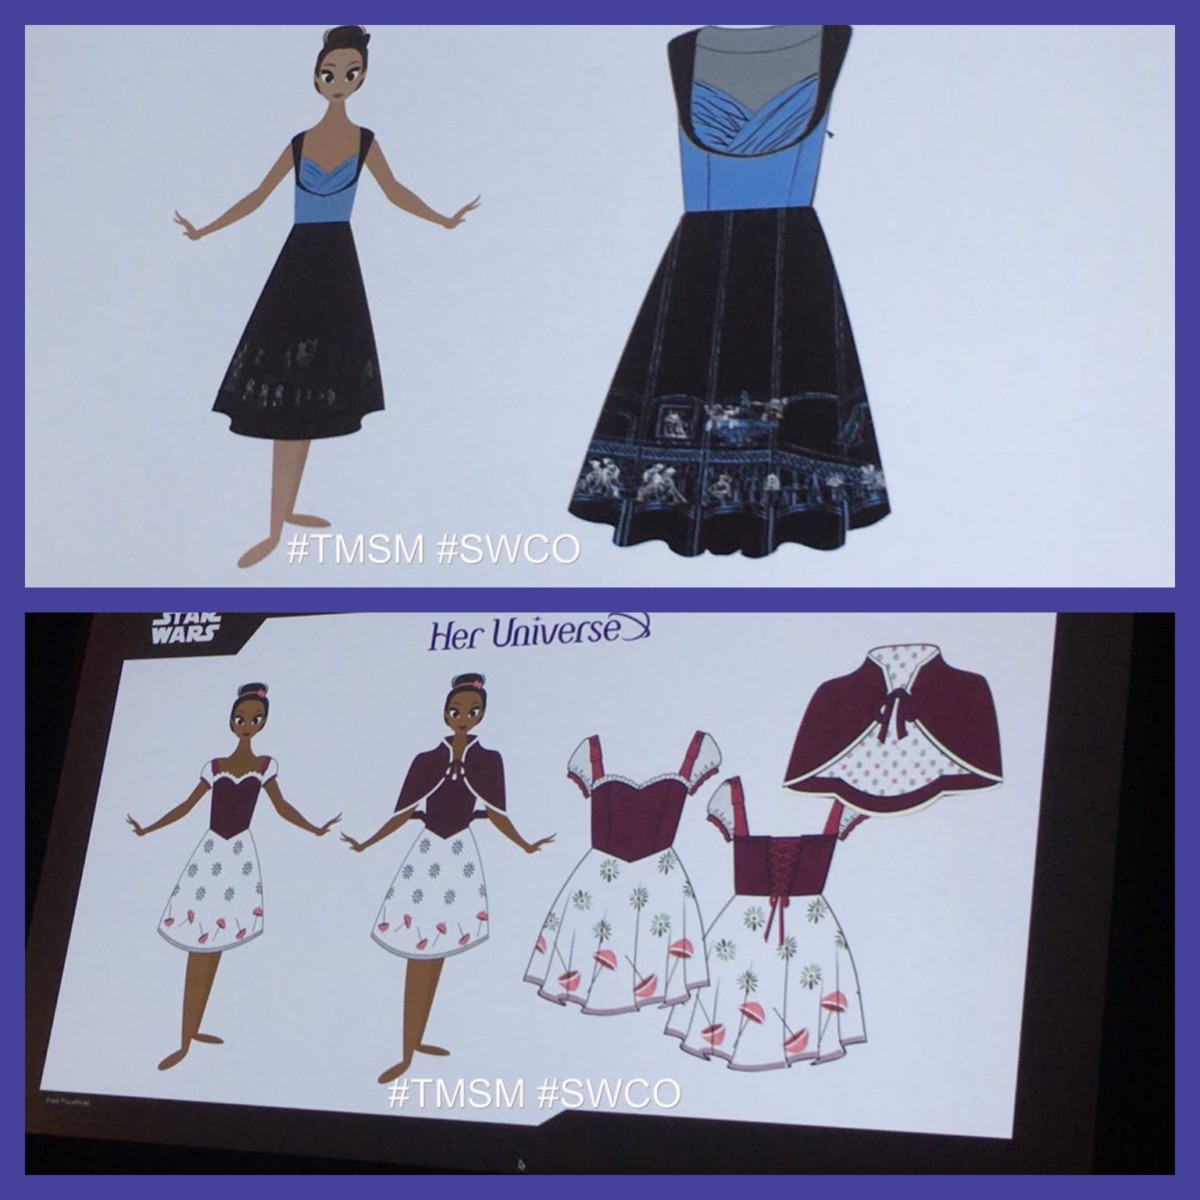 New Haunted Mansion and Star Wars Items Coming to Disney Parks From Her Universe! #SWCO 1